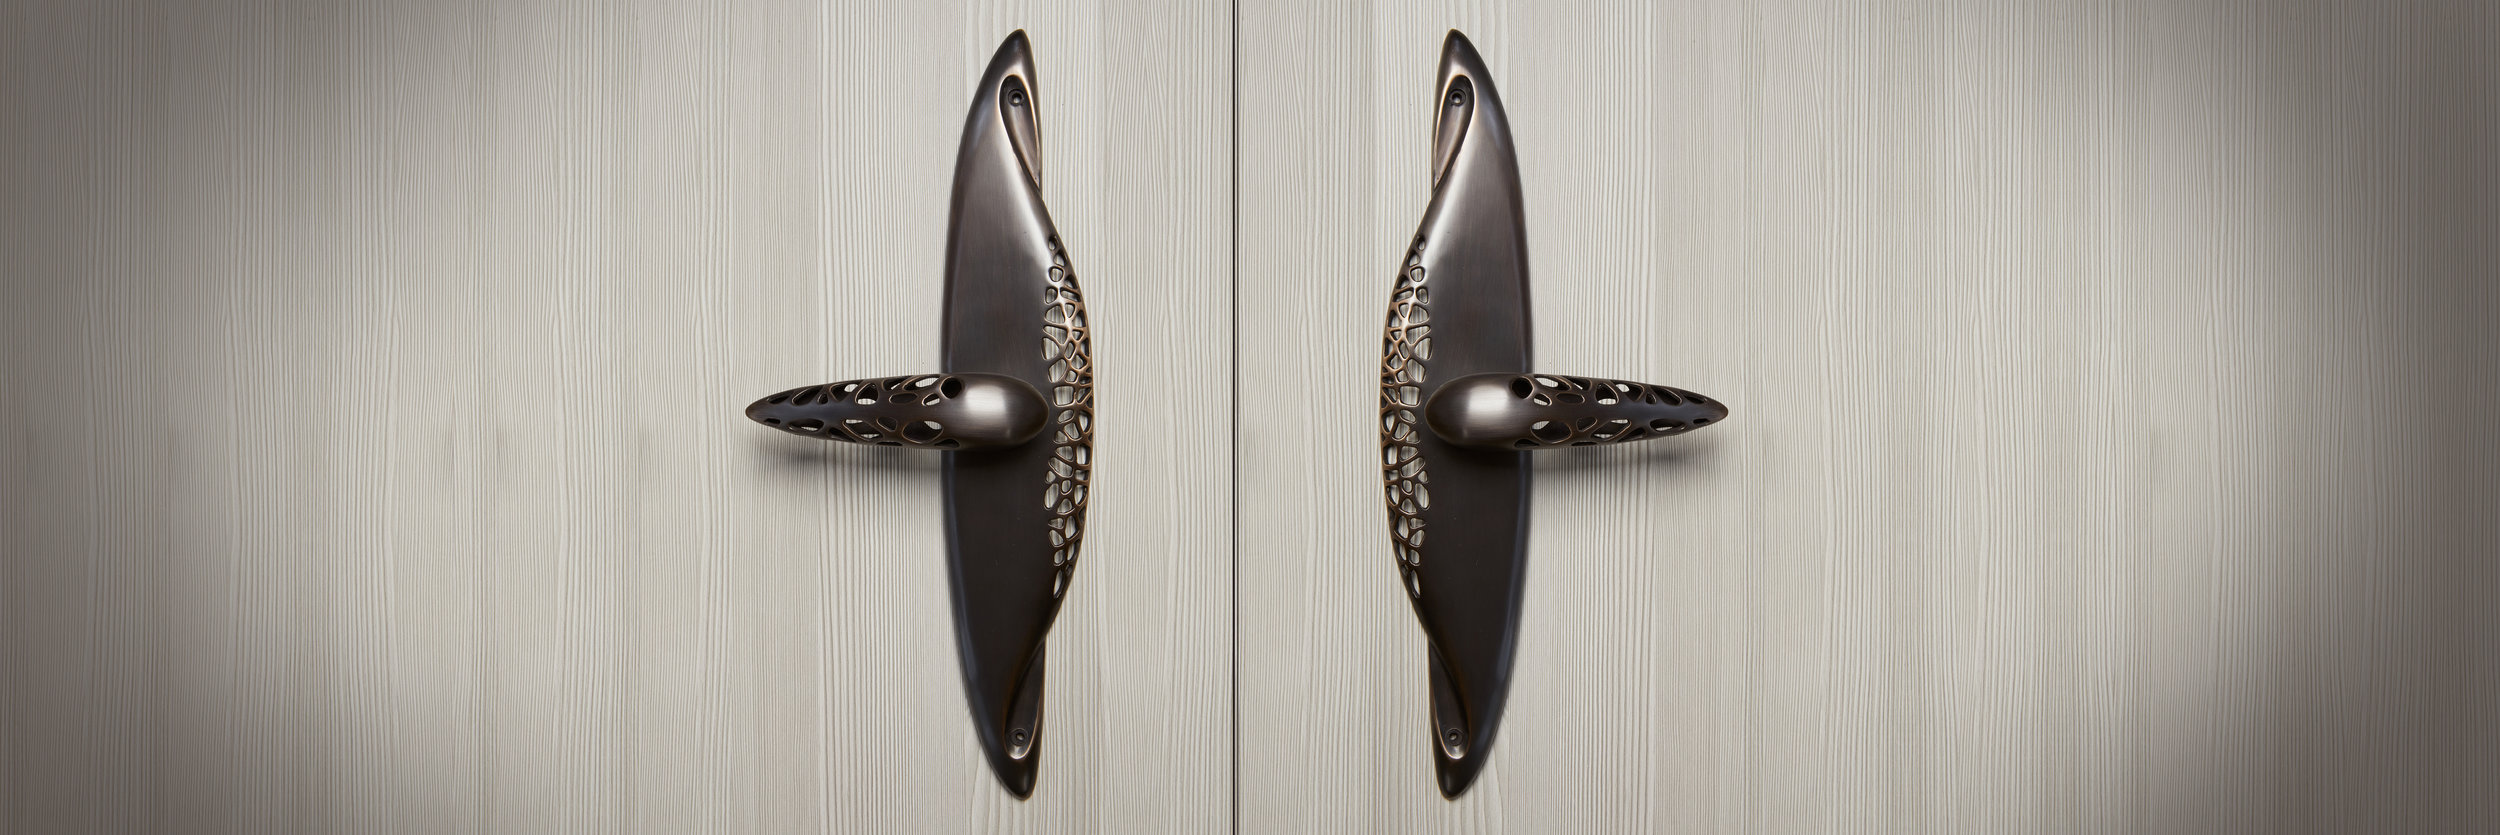 MODERN ENTRY HANDLE    Charred bronze    MORPHIC HARDWARE